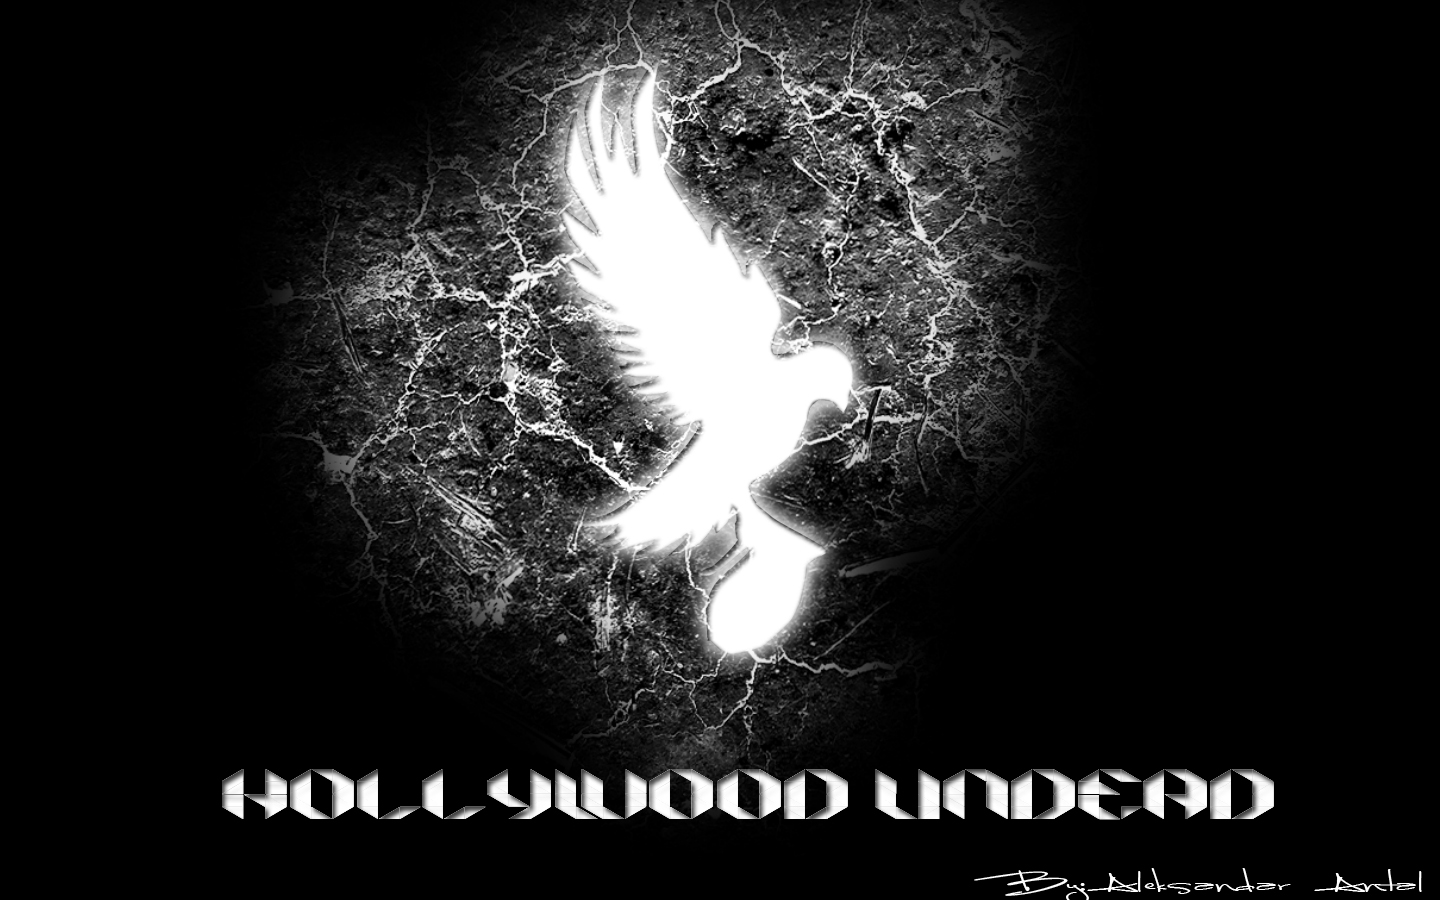 Hollywood Undead Logo Font Hollywood undead 1440x900